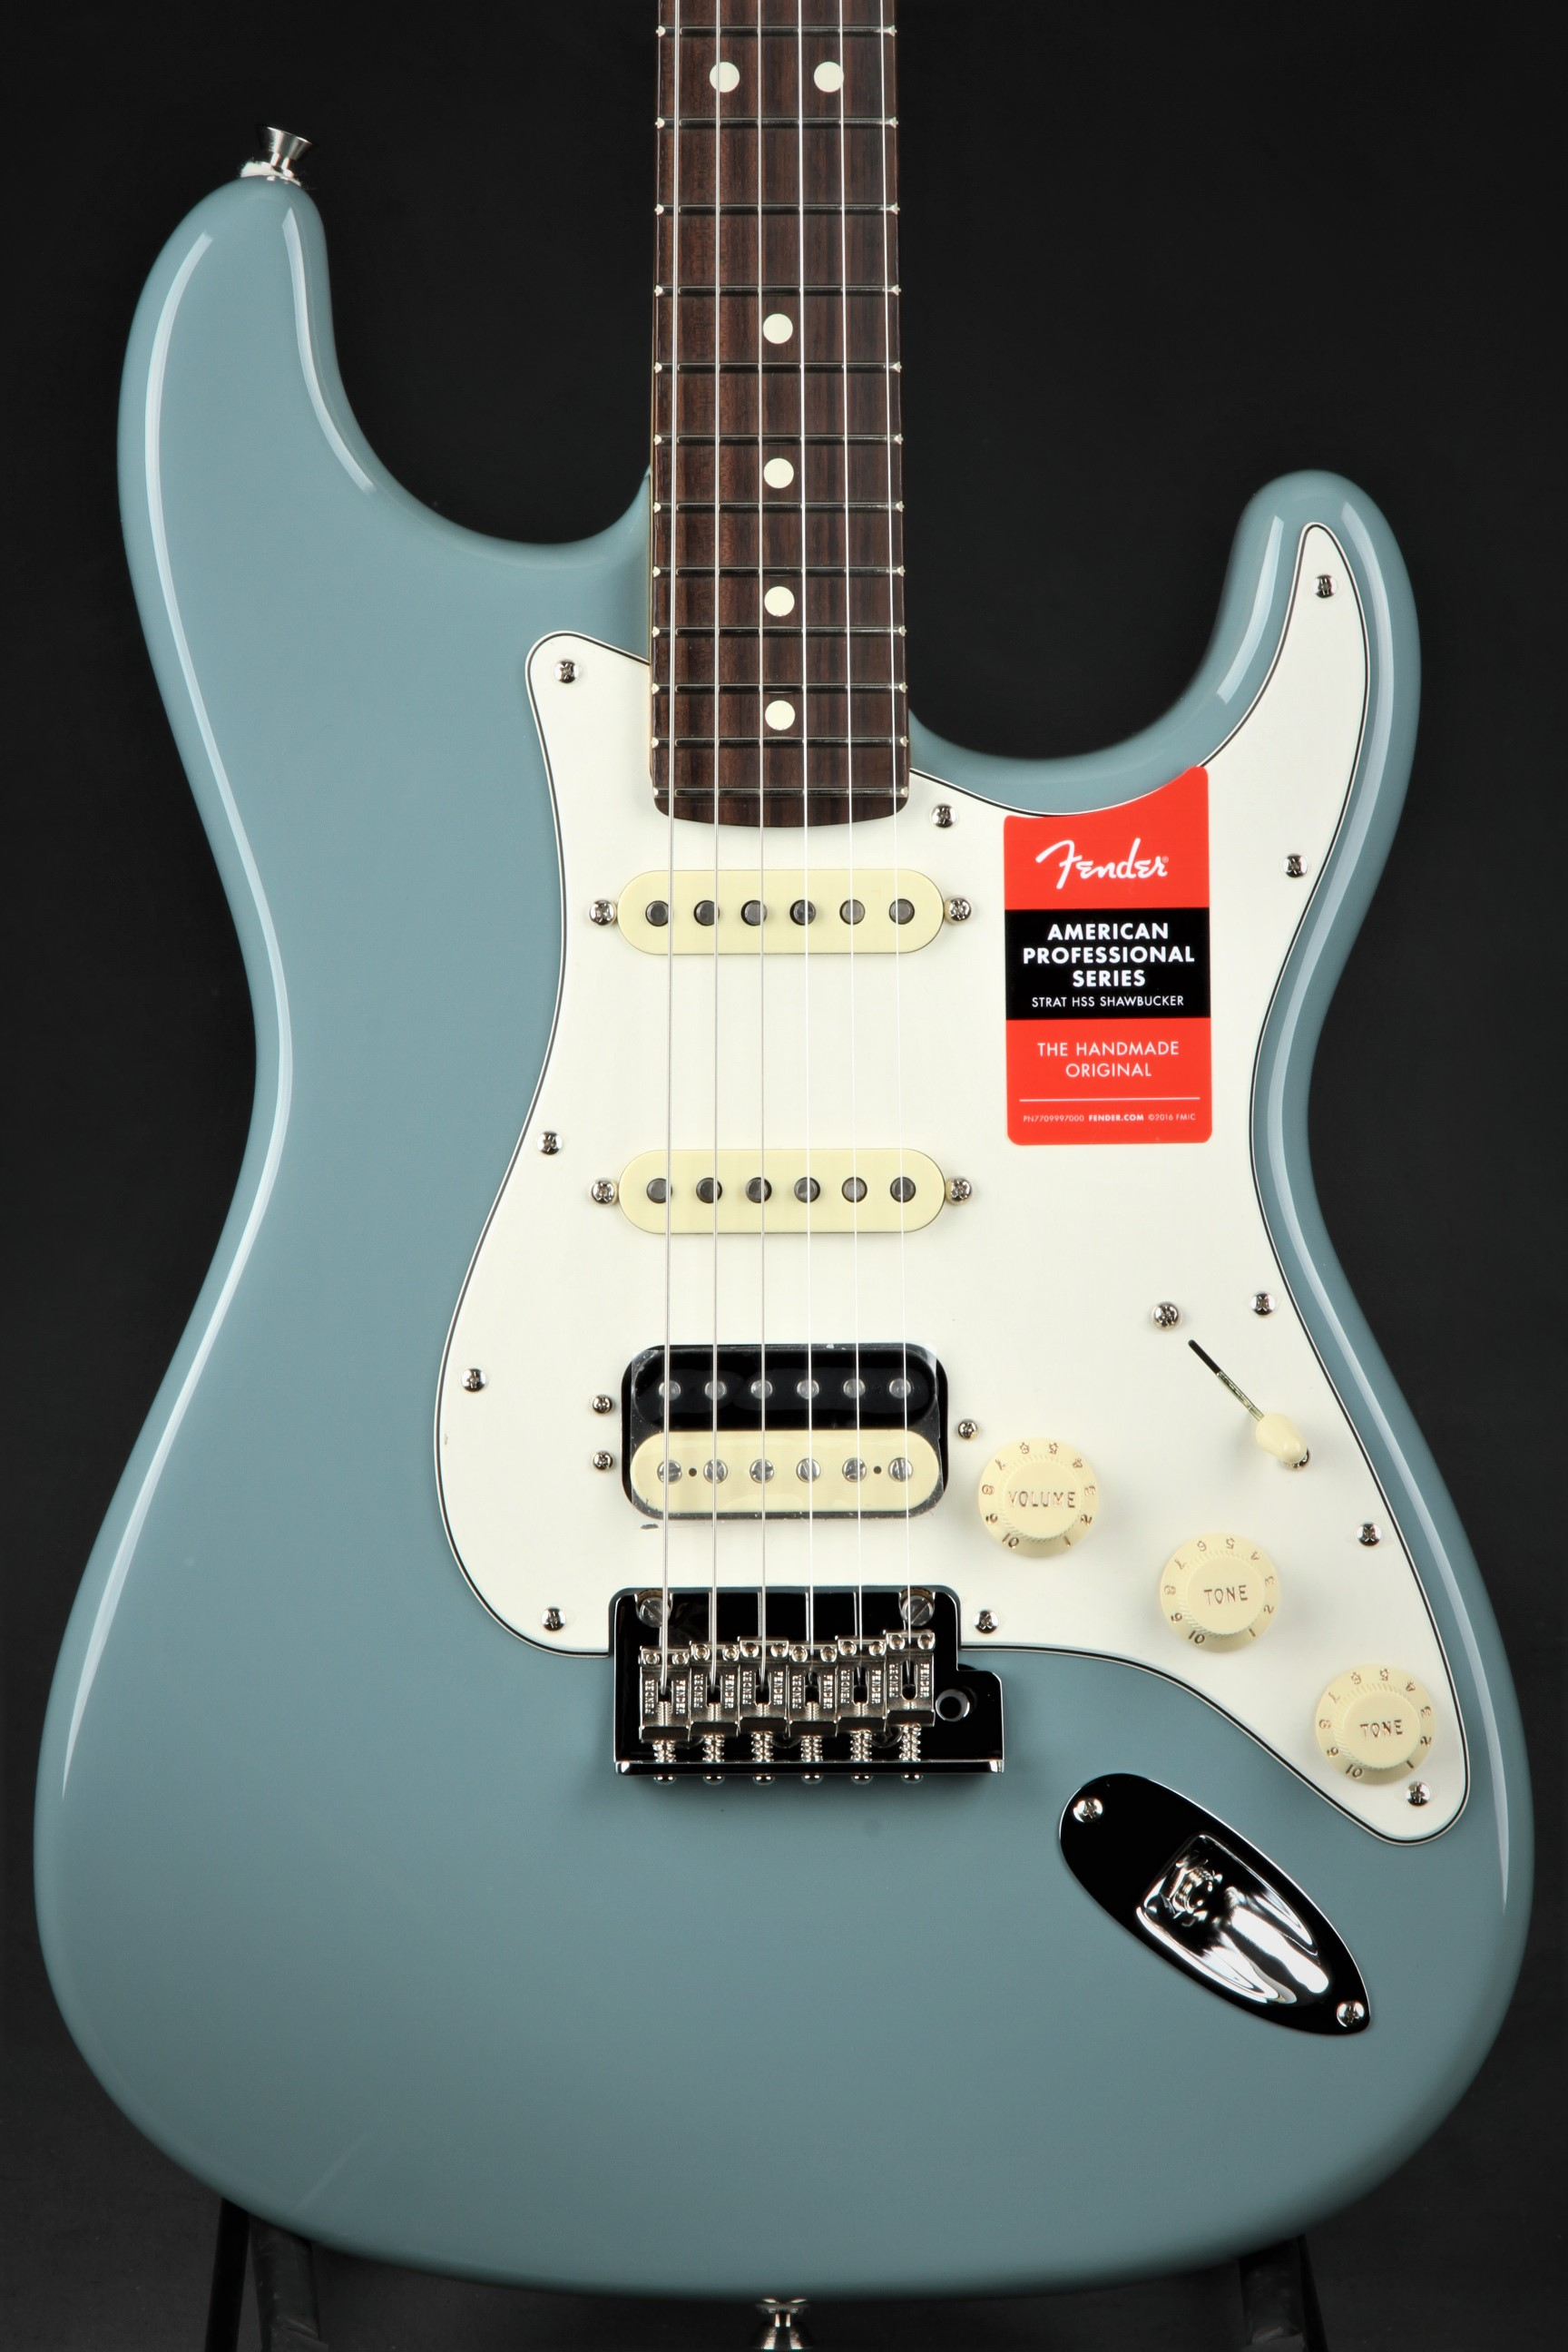 American Professional Stratocaster Hss Wiring - DIY Enthusiasts ...